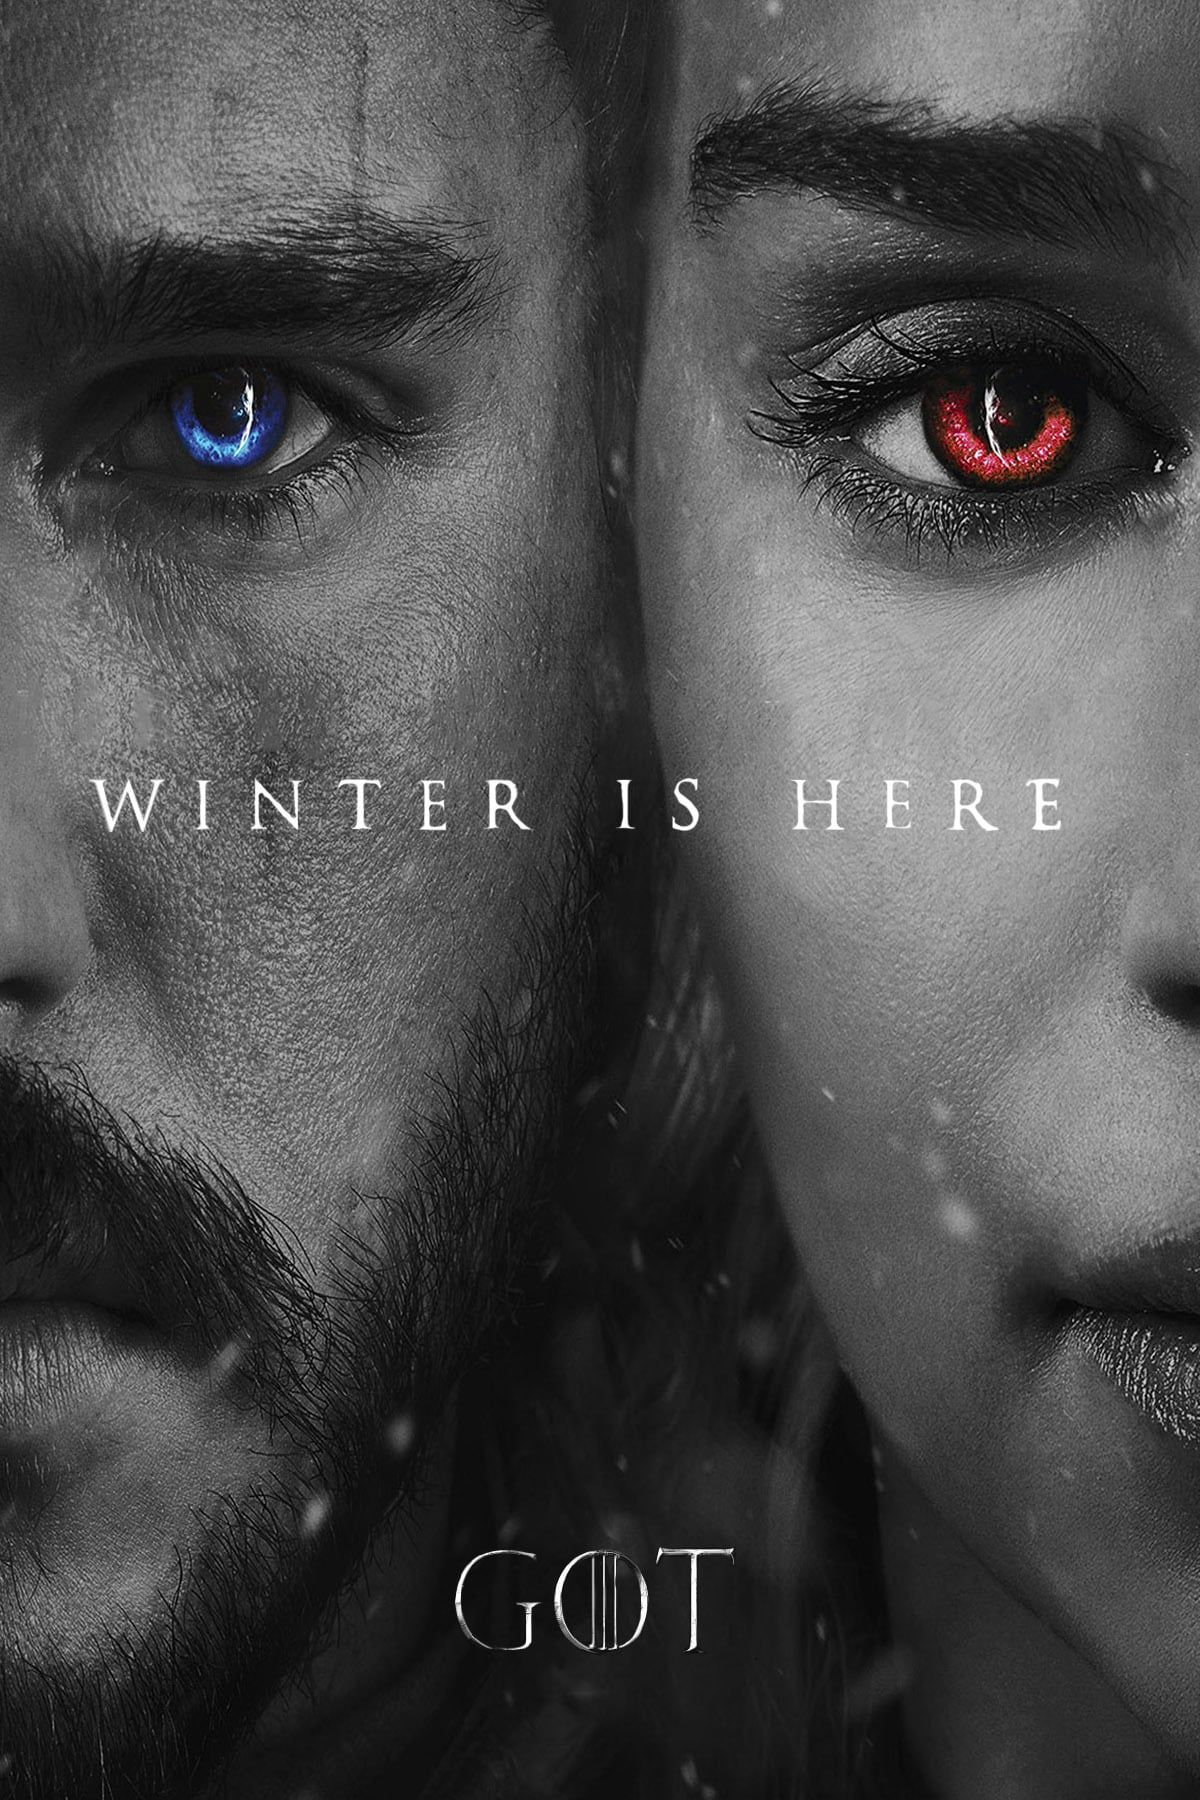 Game Of Throne Poster 50 Printable Posters Free Download Ver